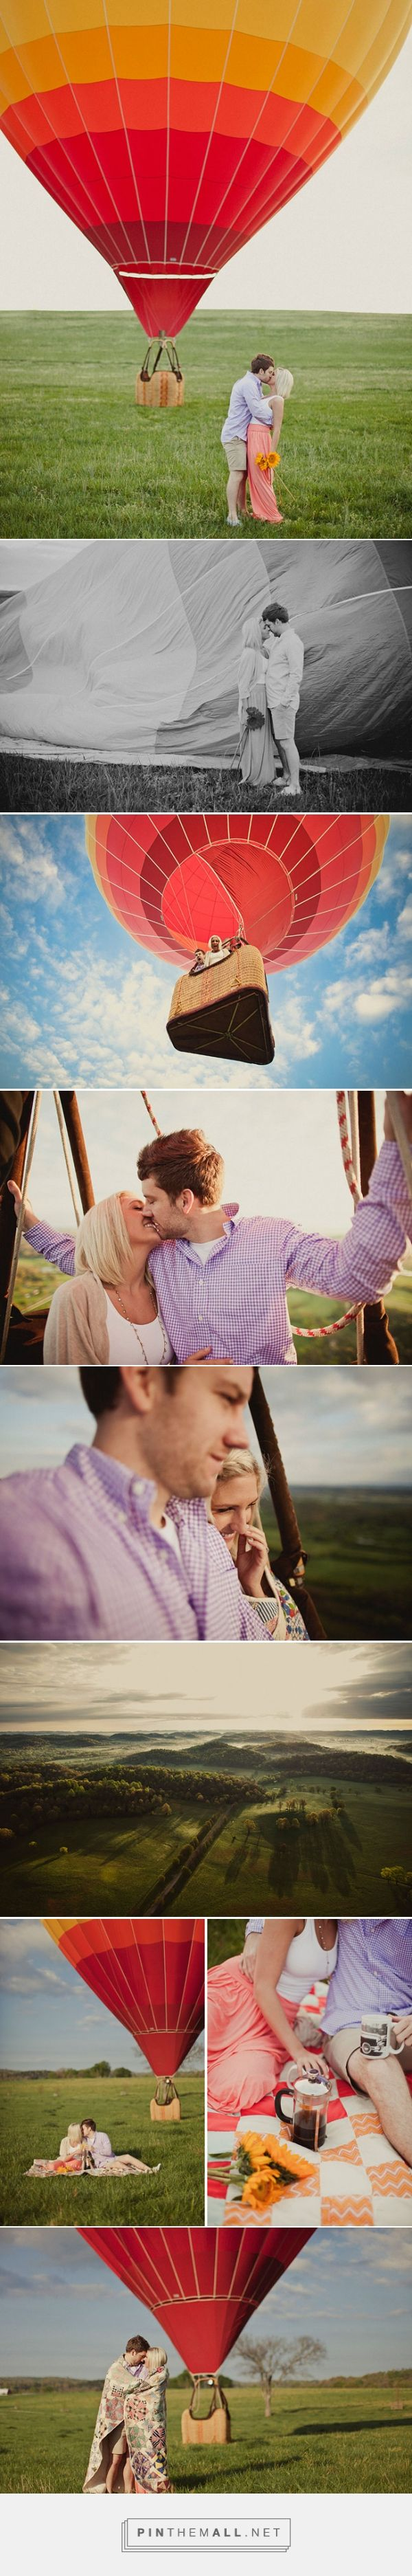 """Adorable, fun, creative series. """"Hot Air Balloon Engagement"""" - Tennessee (Lindsey + Jarrod)   Photography by Shaun Menary."""